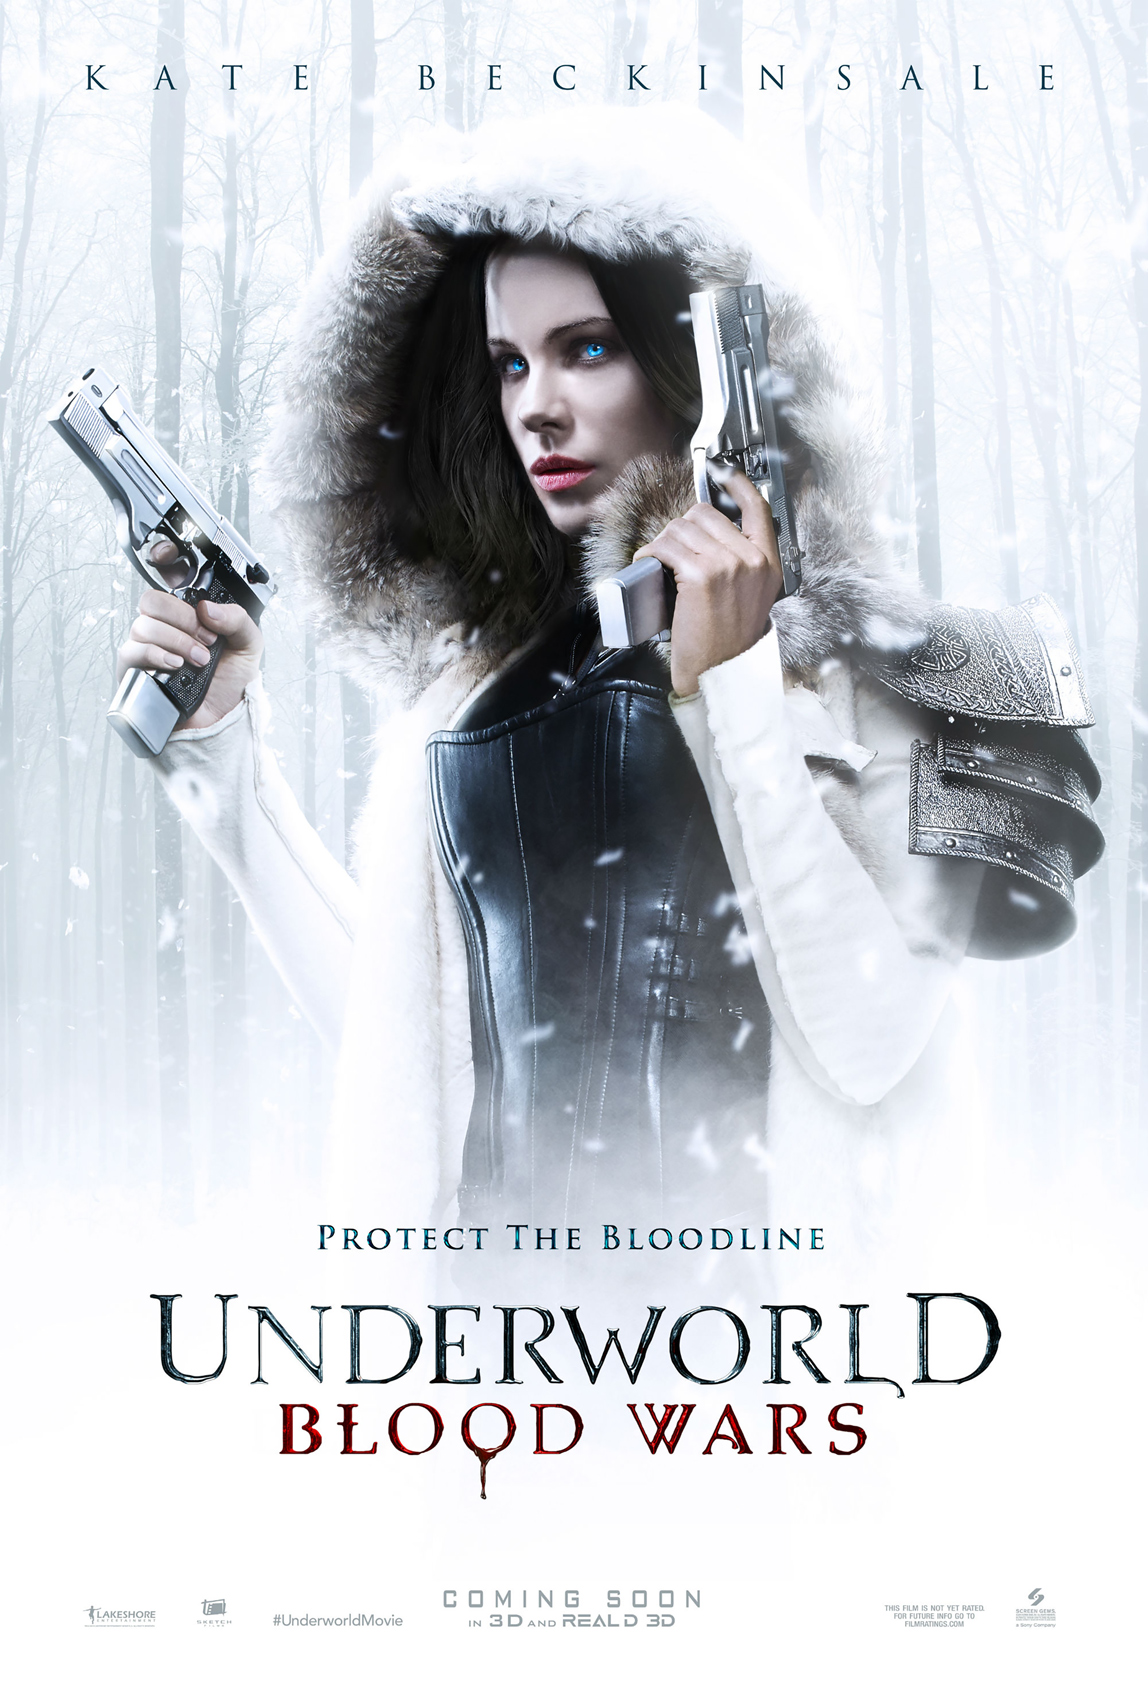 KateBeckinsale_Underworld_002